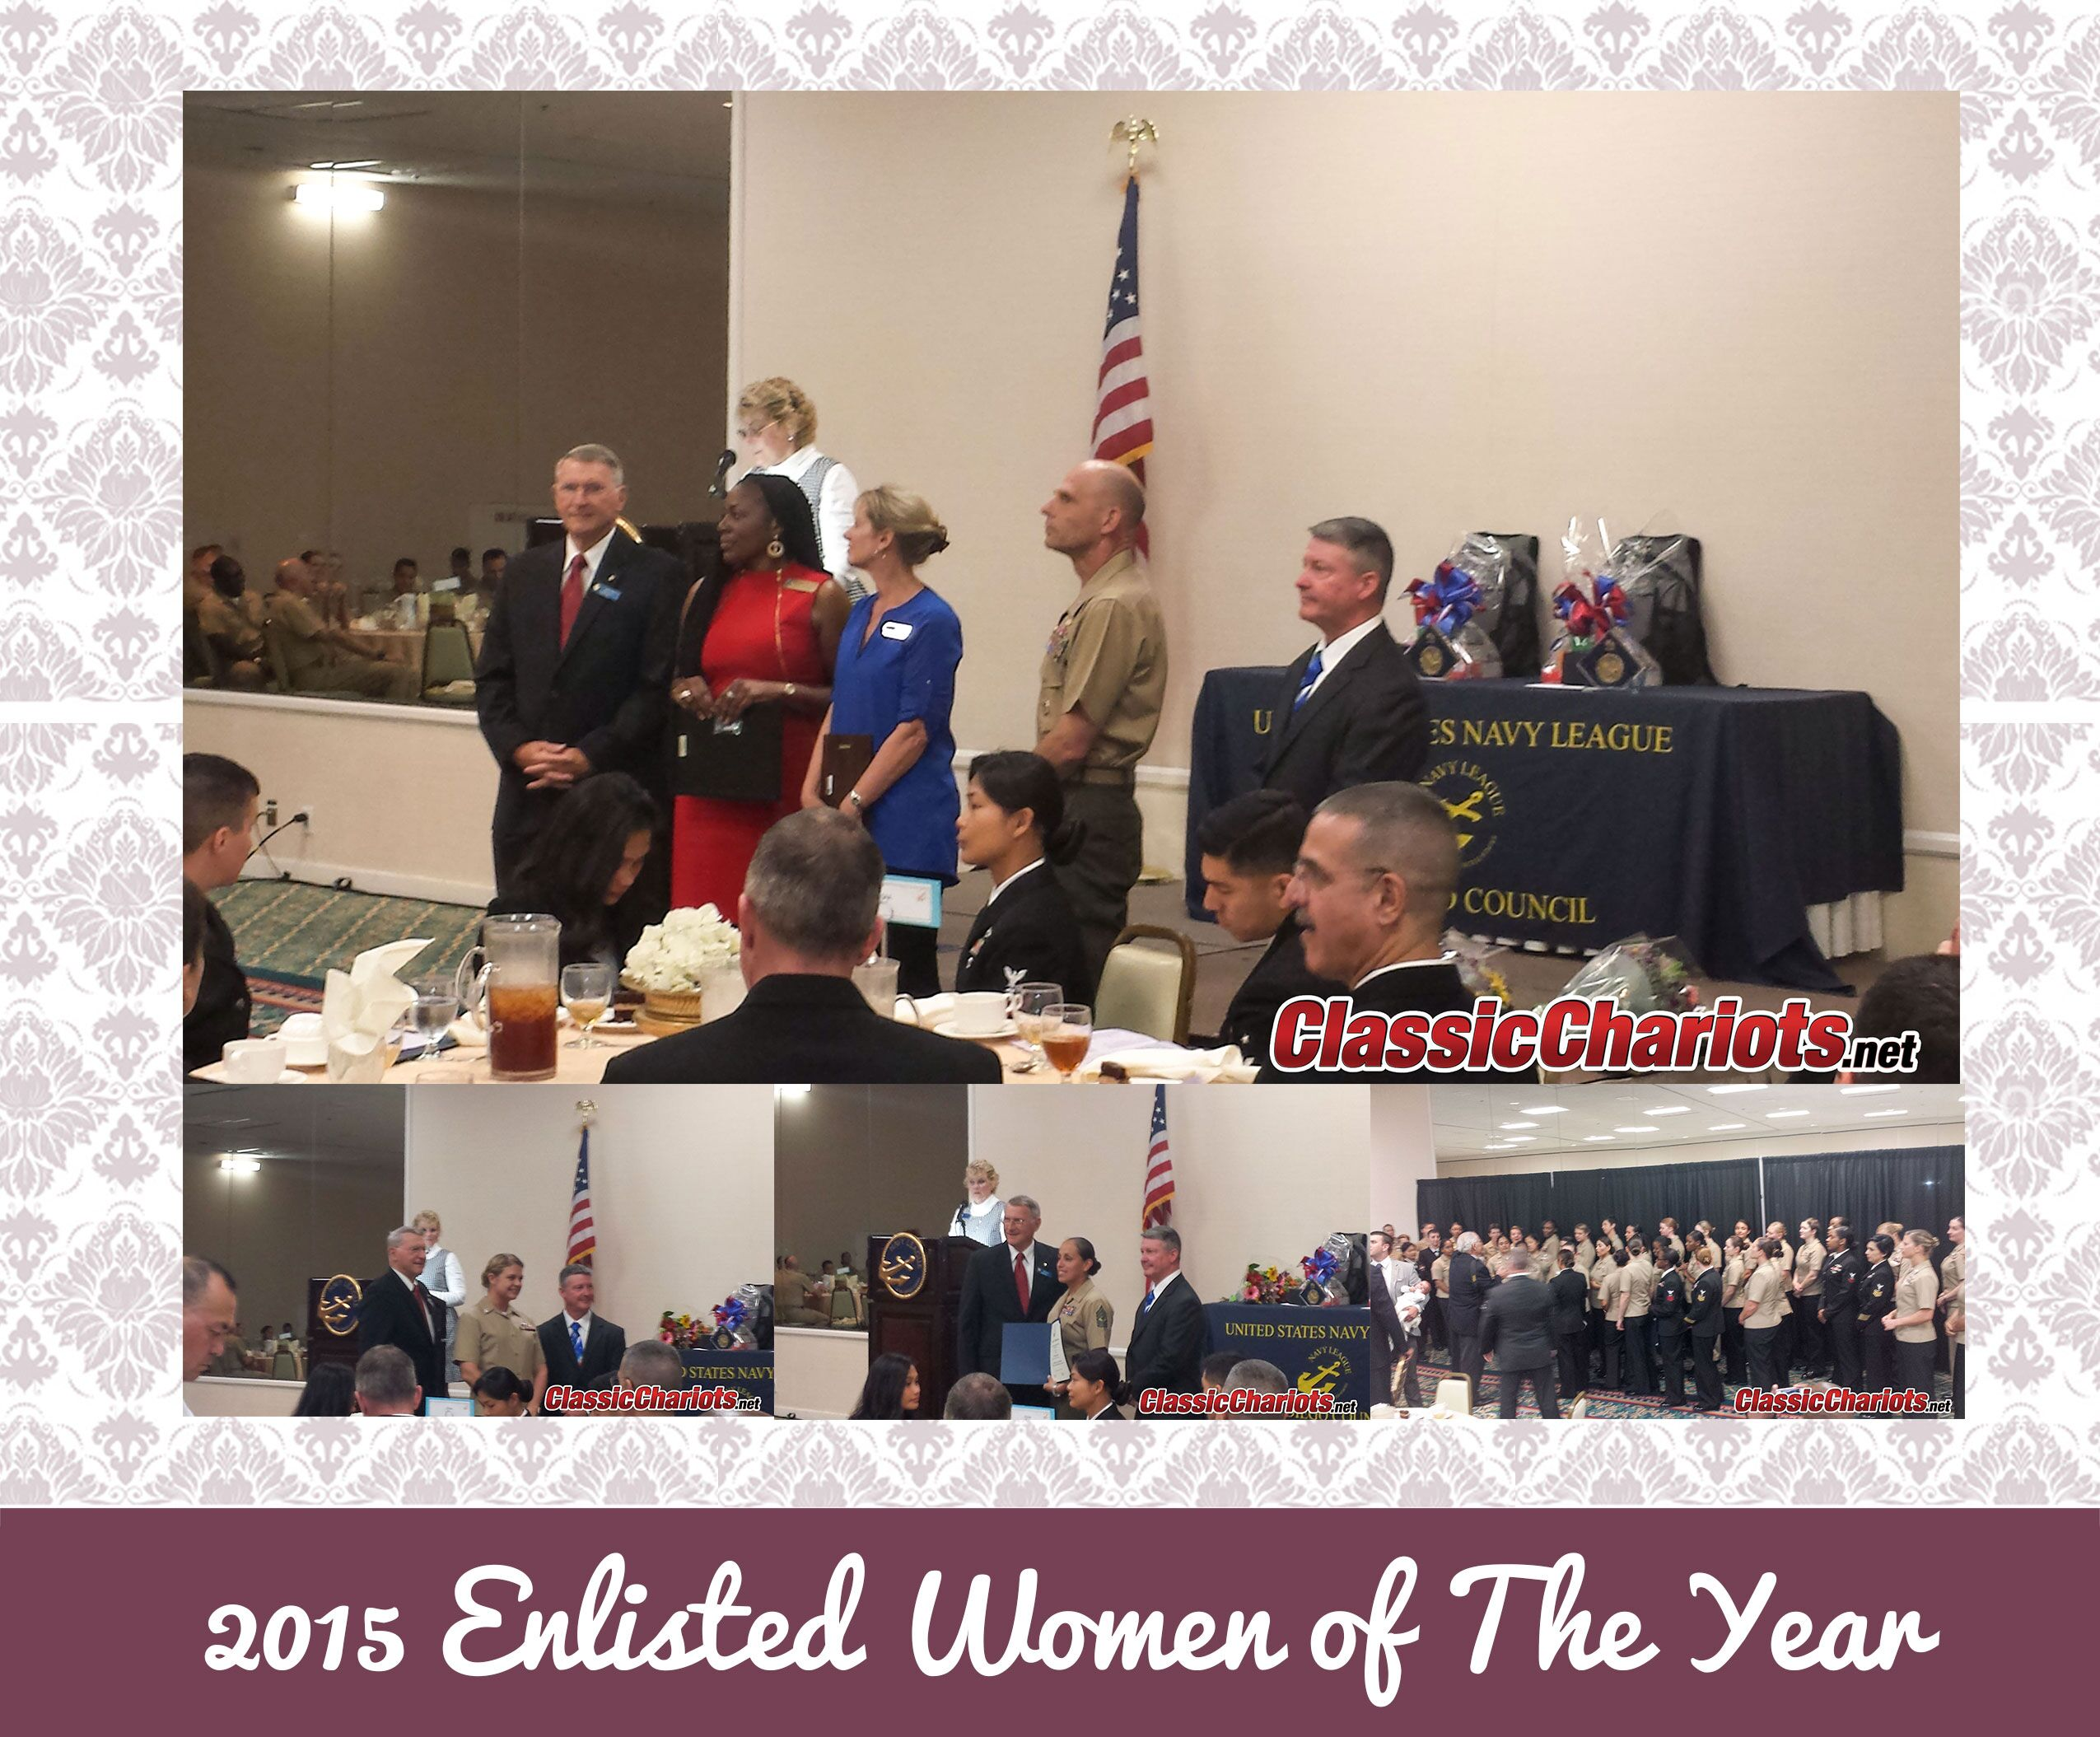 Classic Chariots was proud to attend 2015 Enlisted Women of the Year